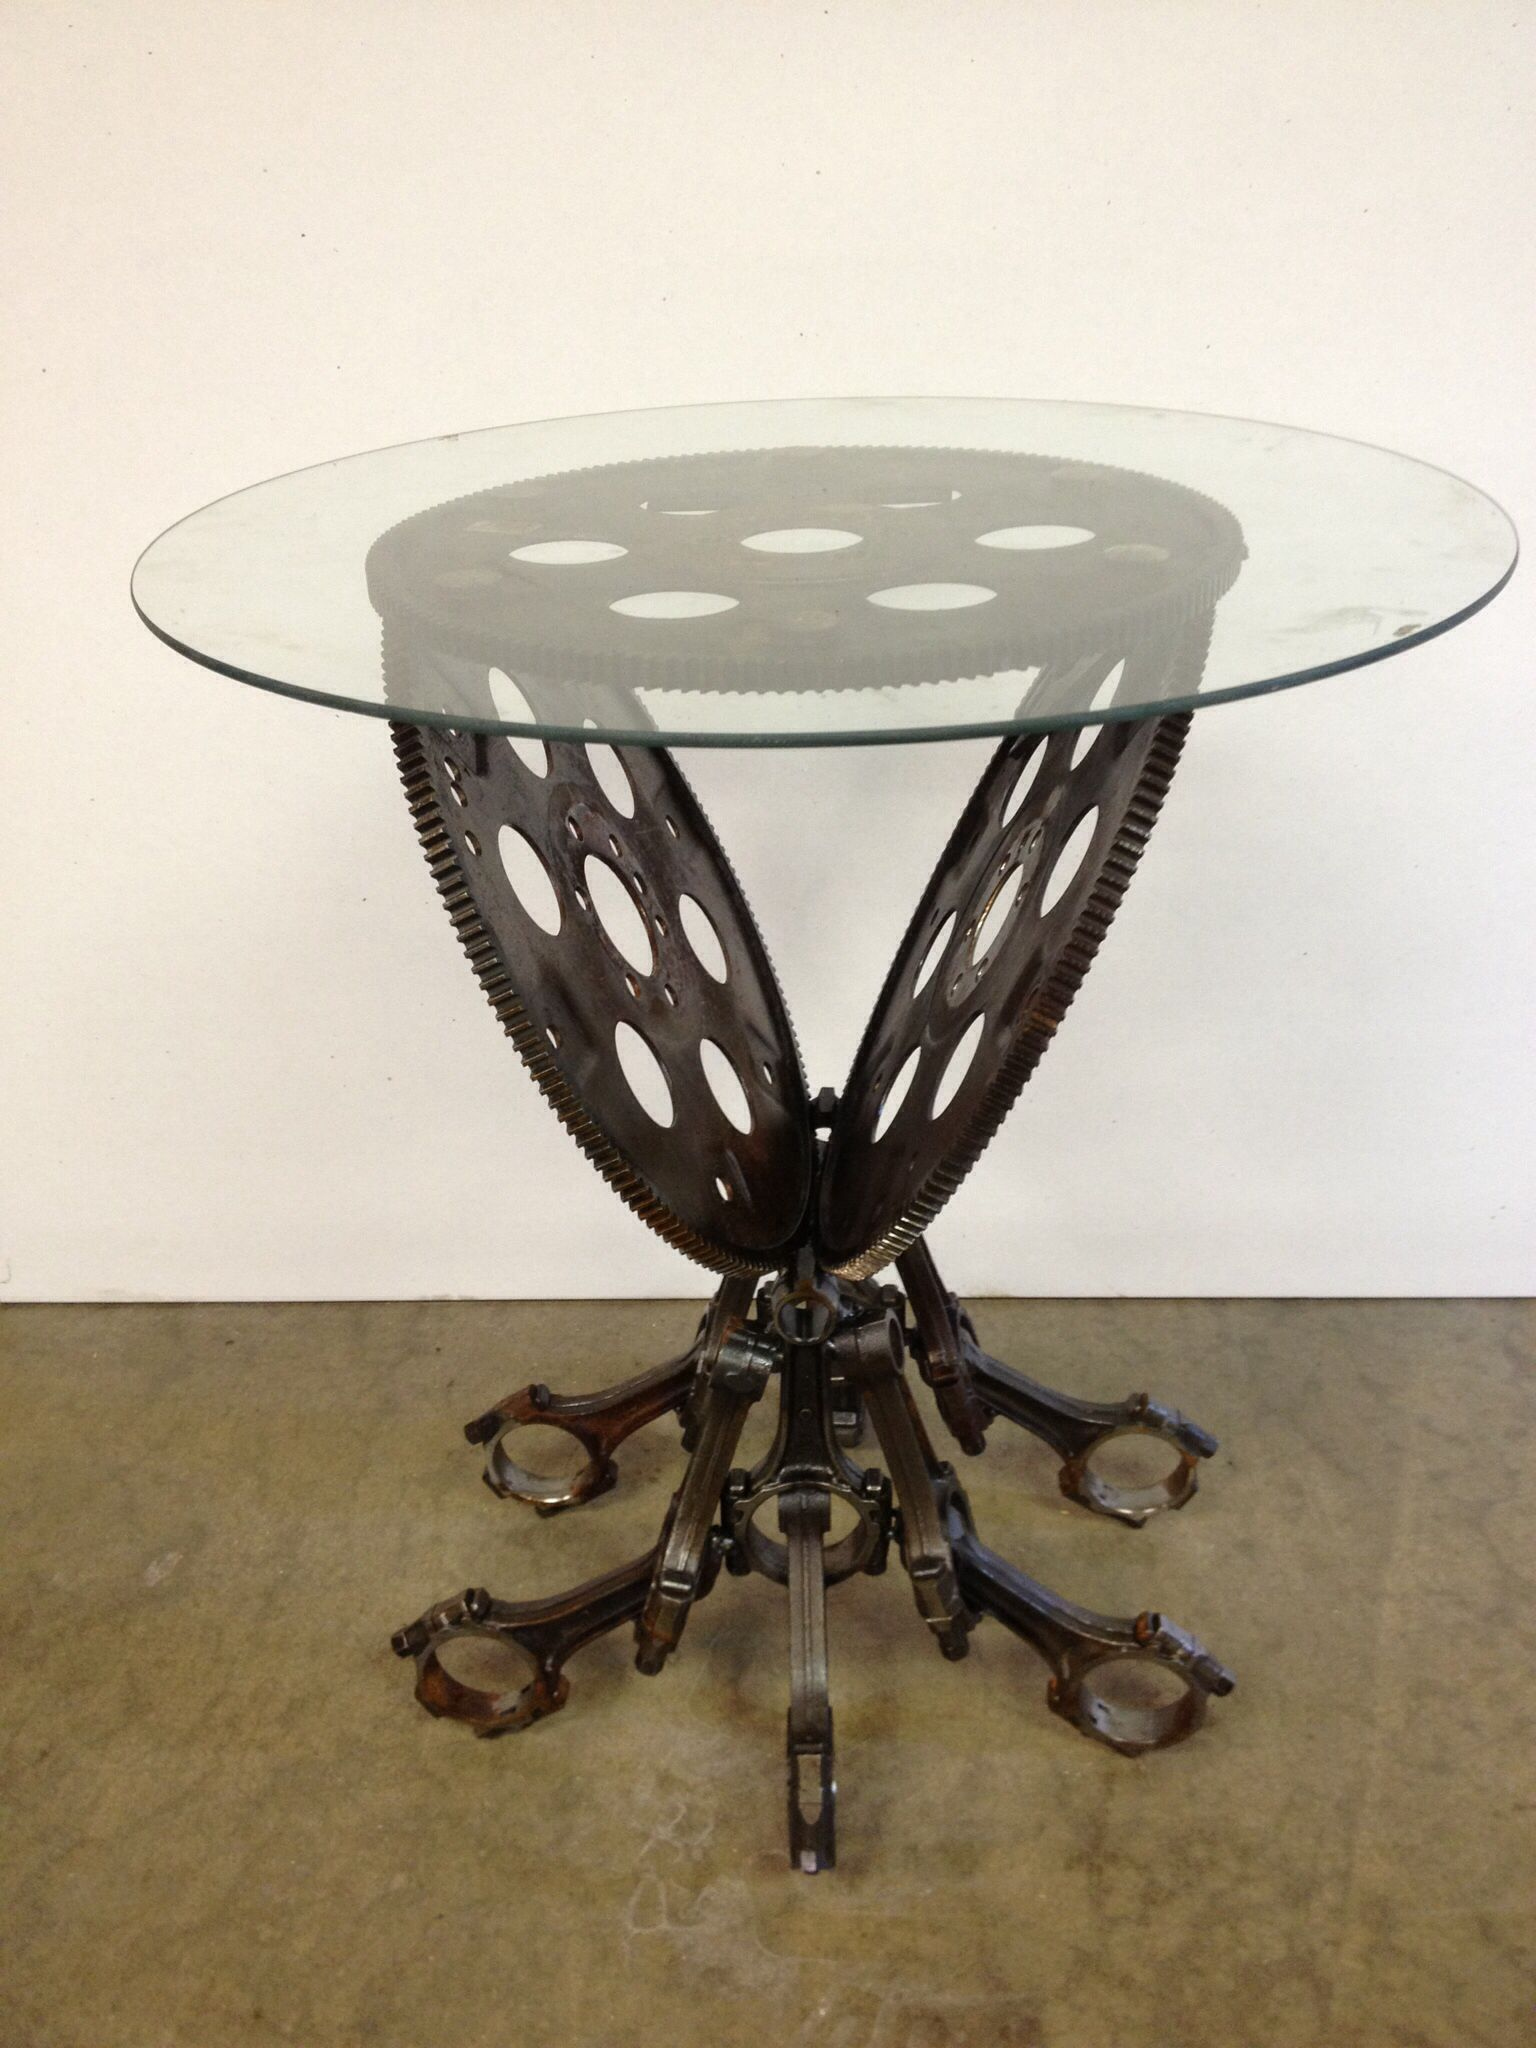 Sold End table made from pistons and flywheels